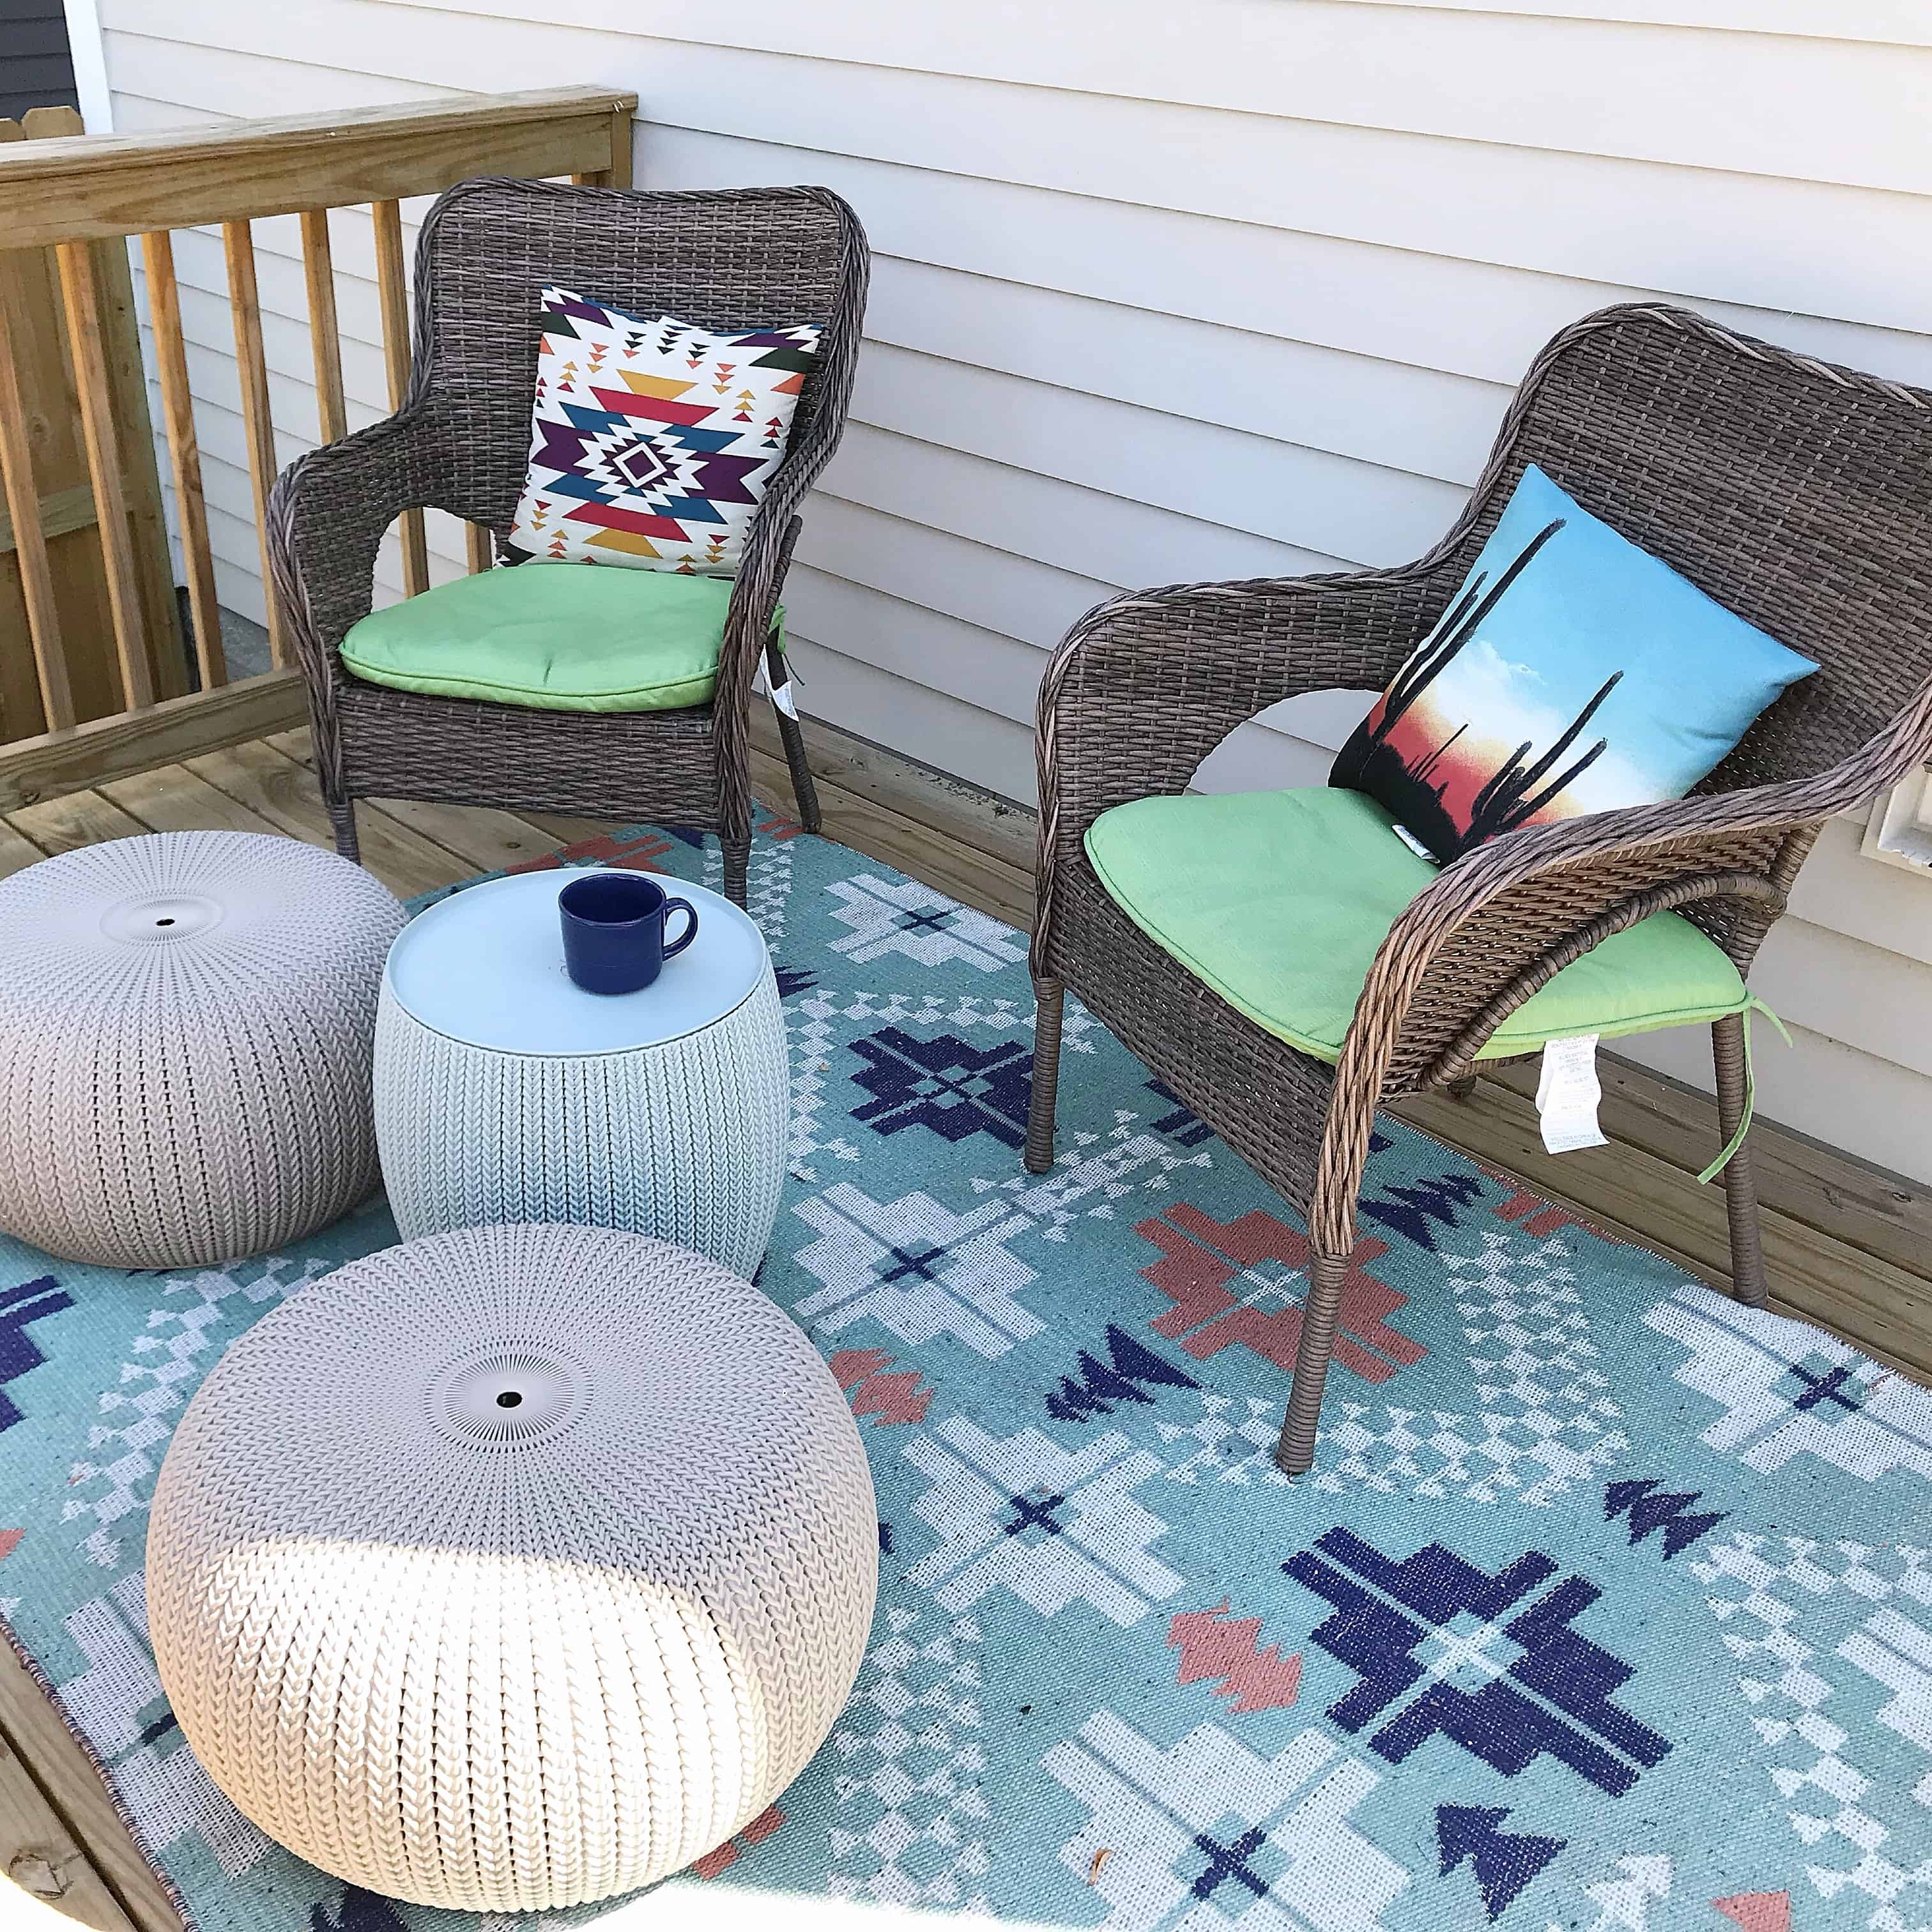 Deck space with comfy chairs